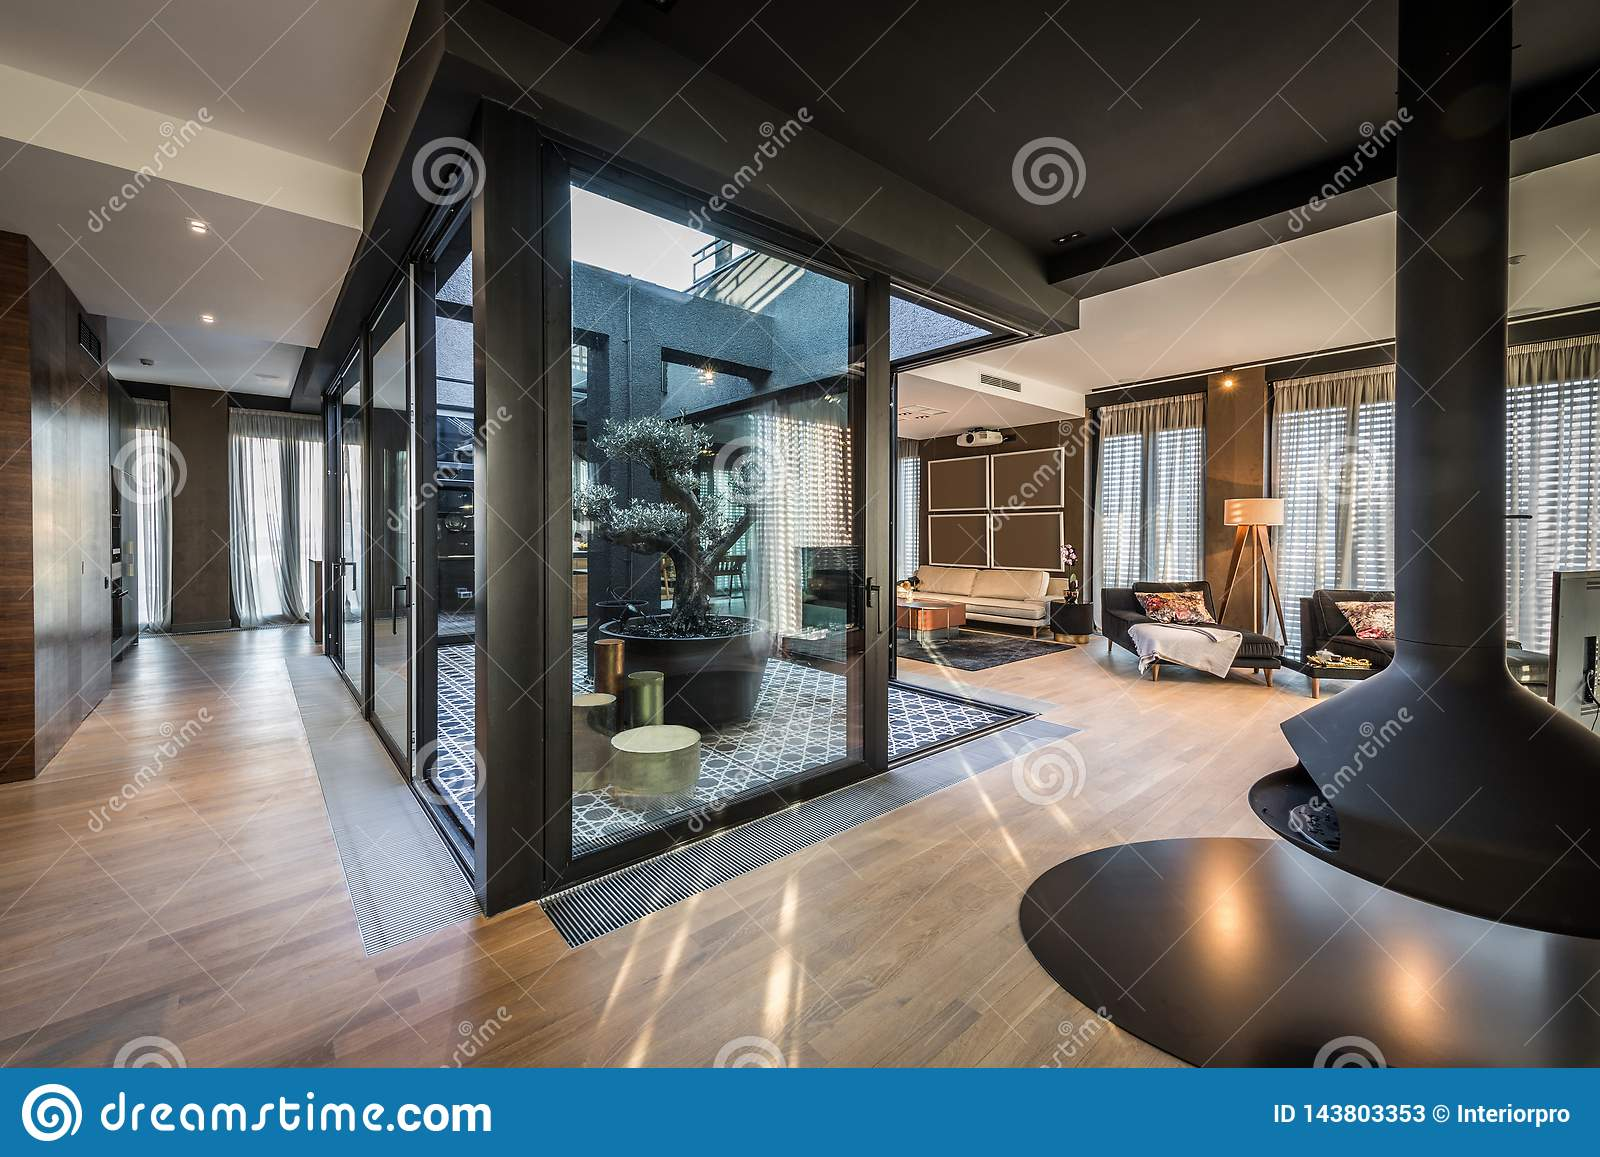 Interior Of Modern Luxury Penthouse Apartment Stock Image Image Of Olive Ceiling 143803353